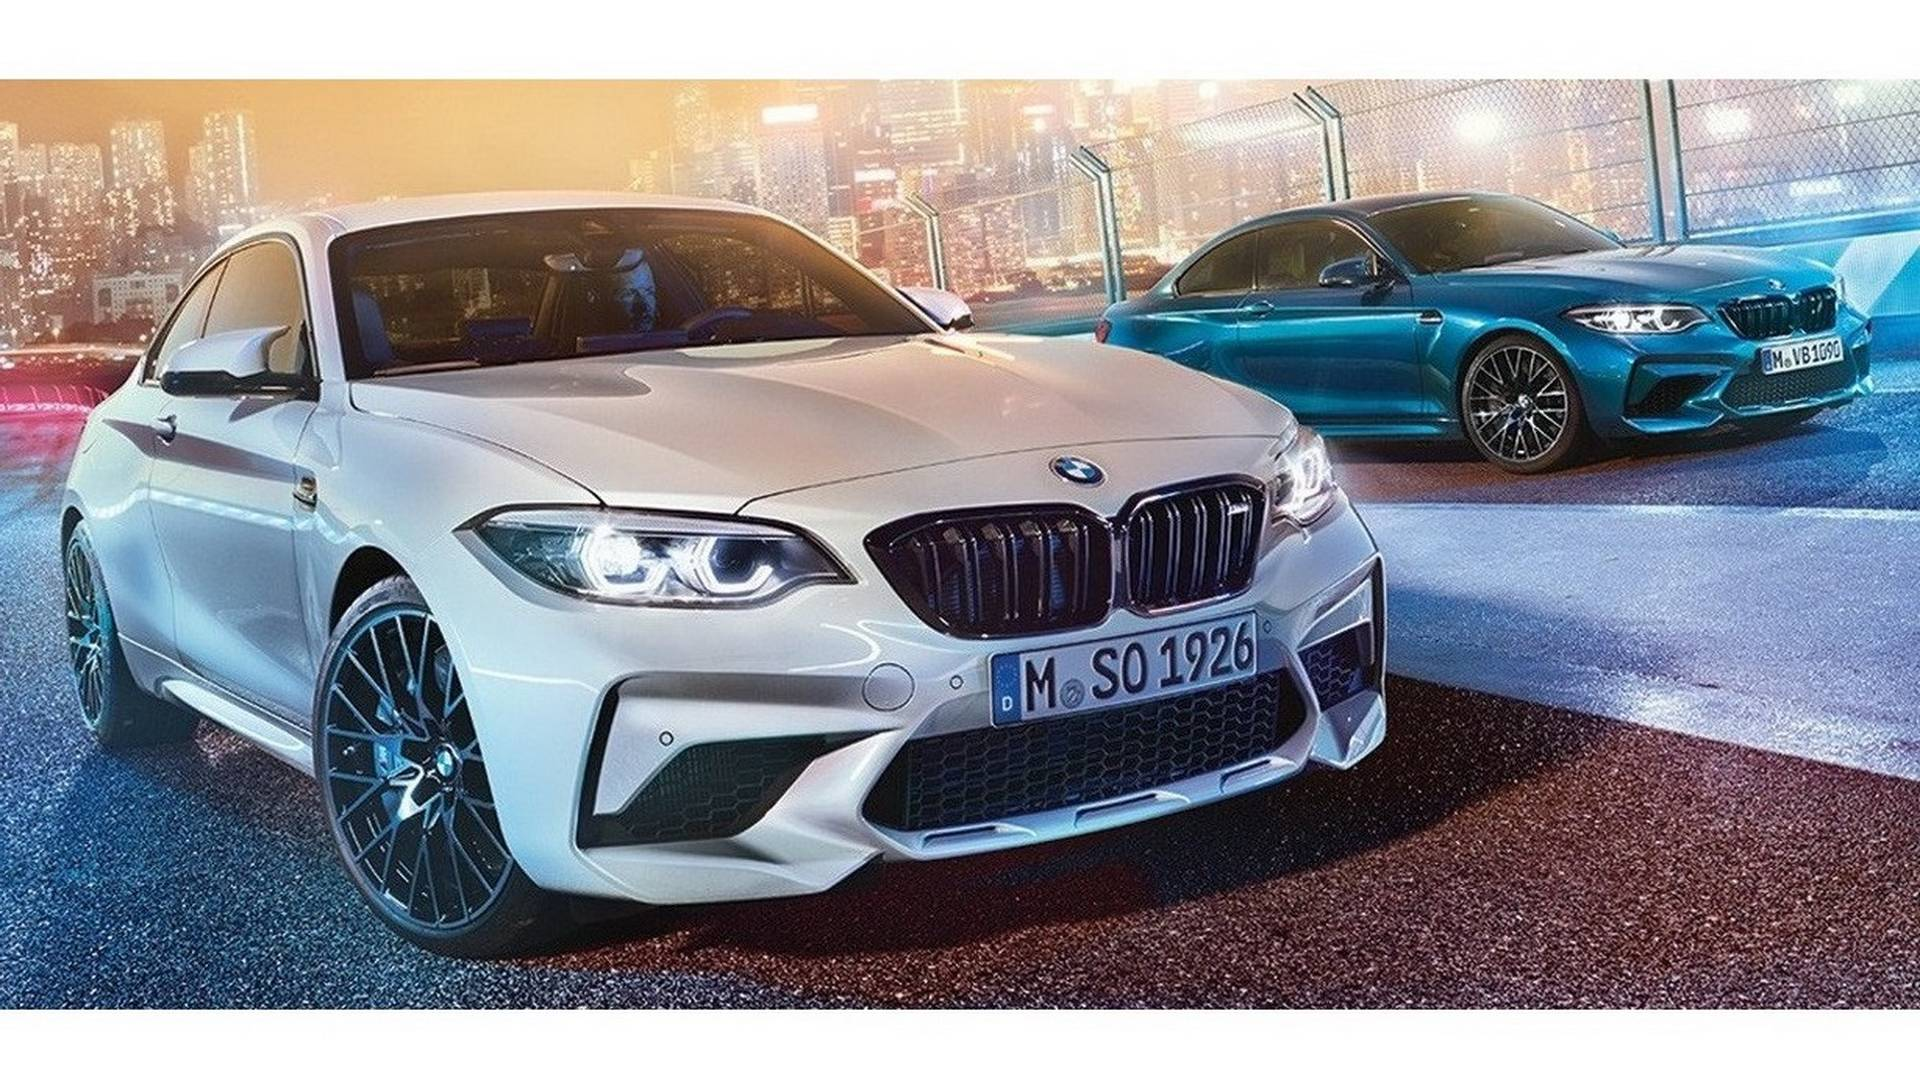 Leaked Specs Suggest Bmw M2 Competition Has 404 Hp 406 Lb Ft